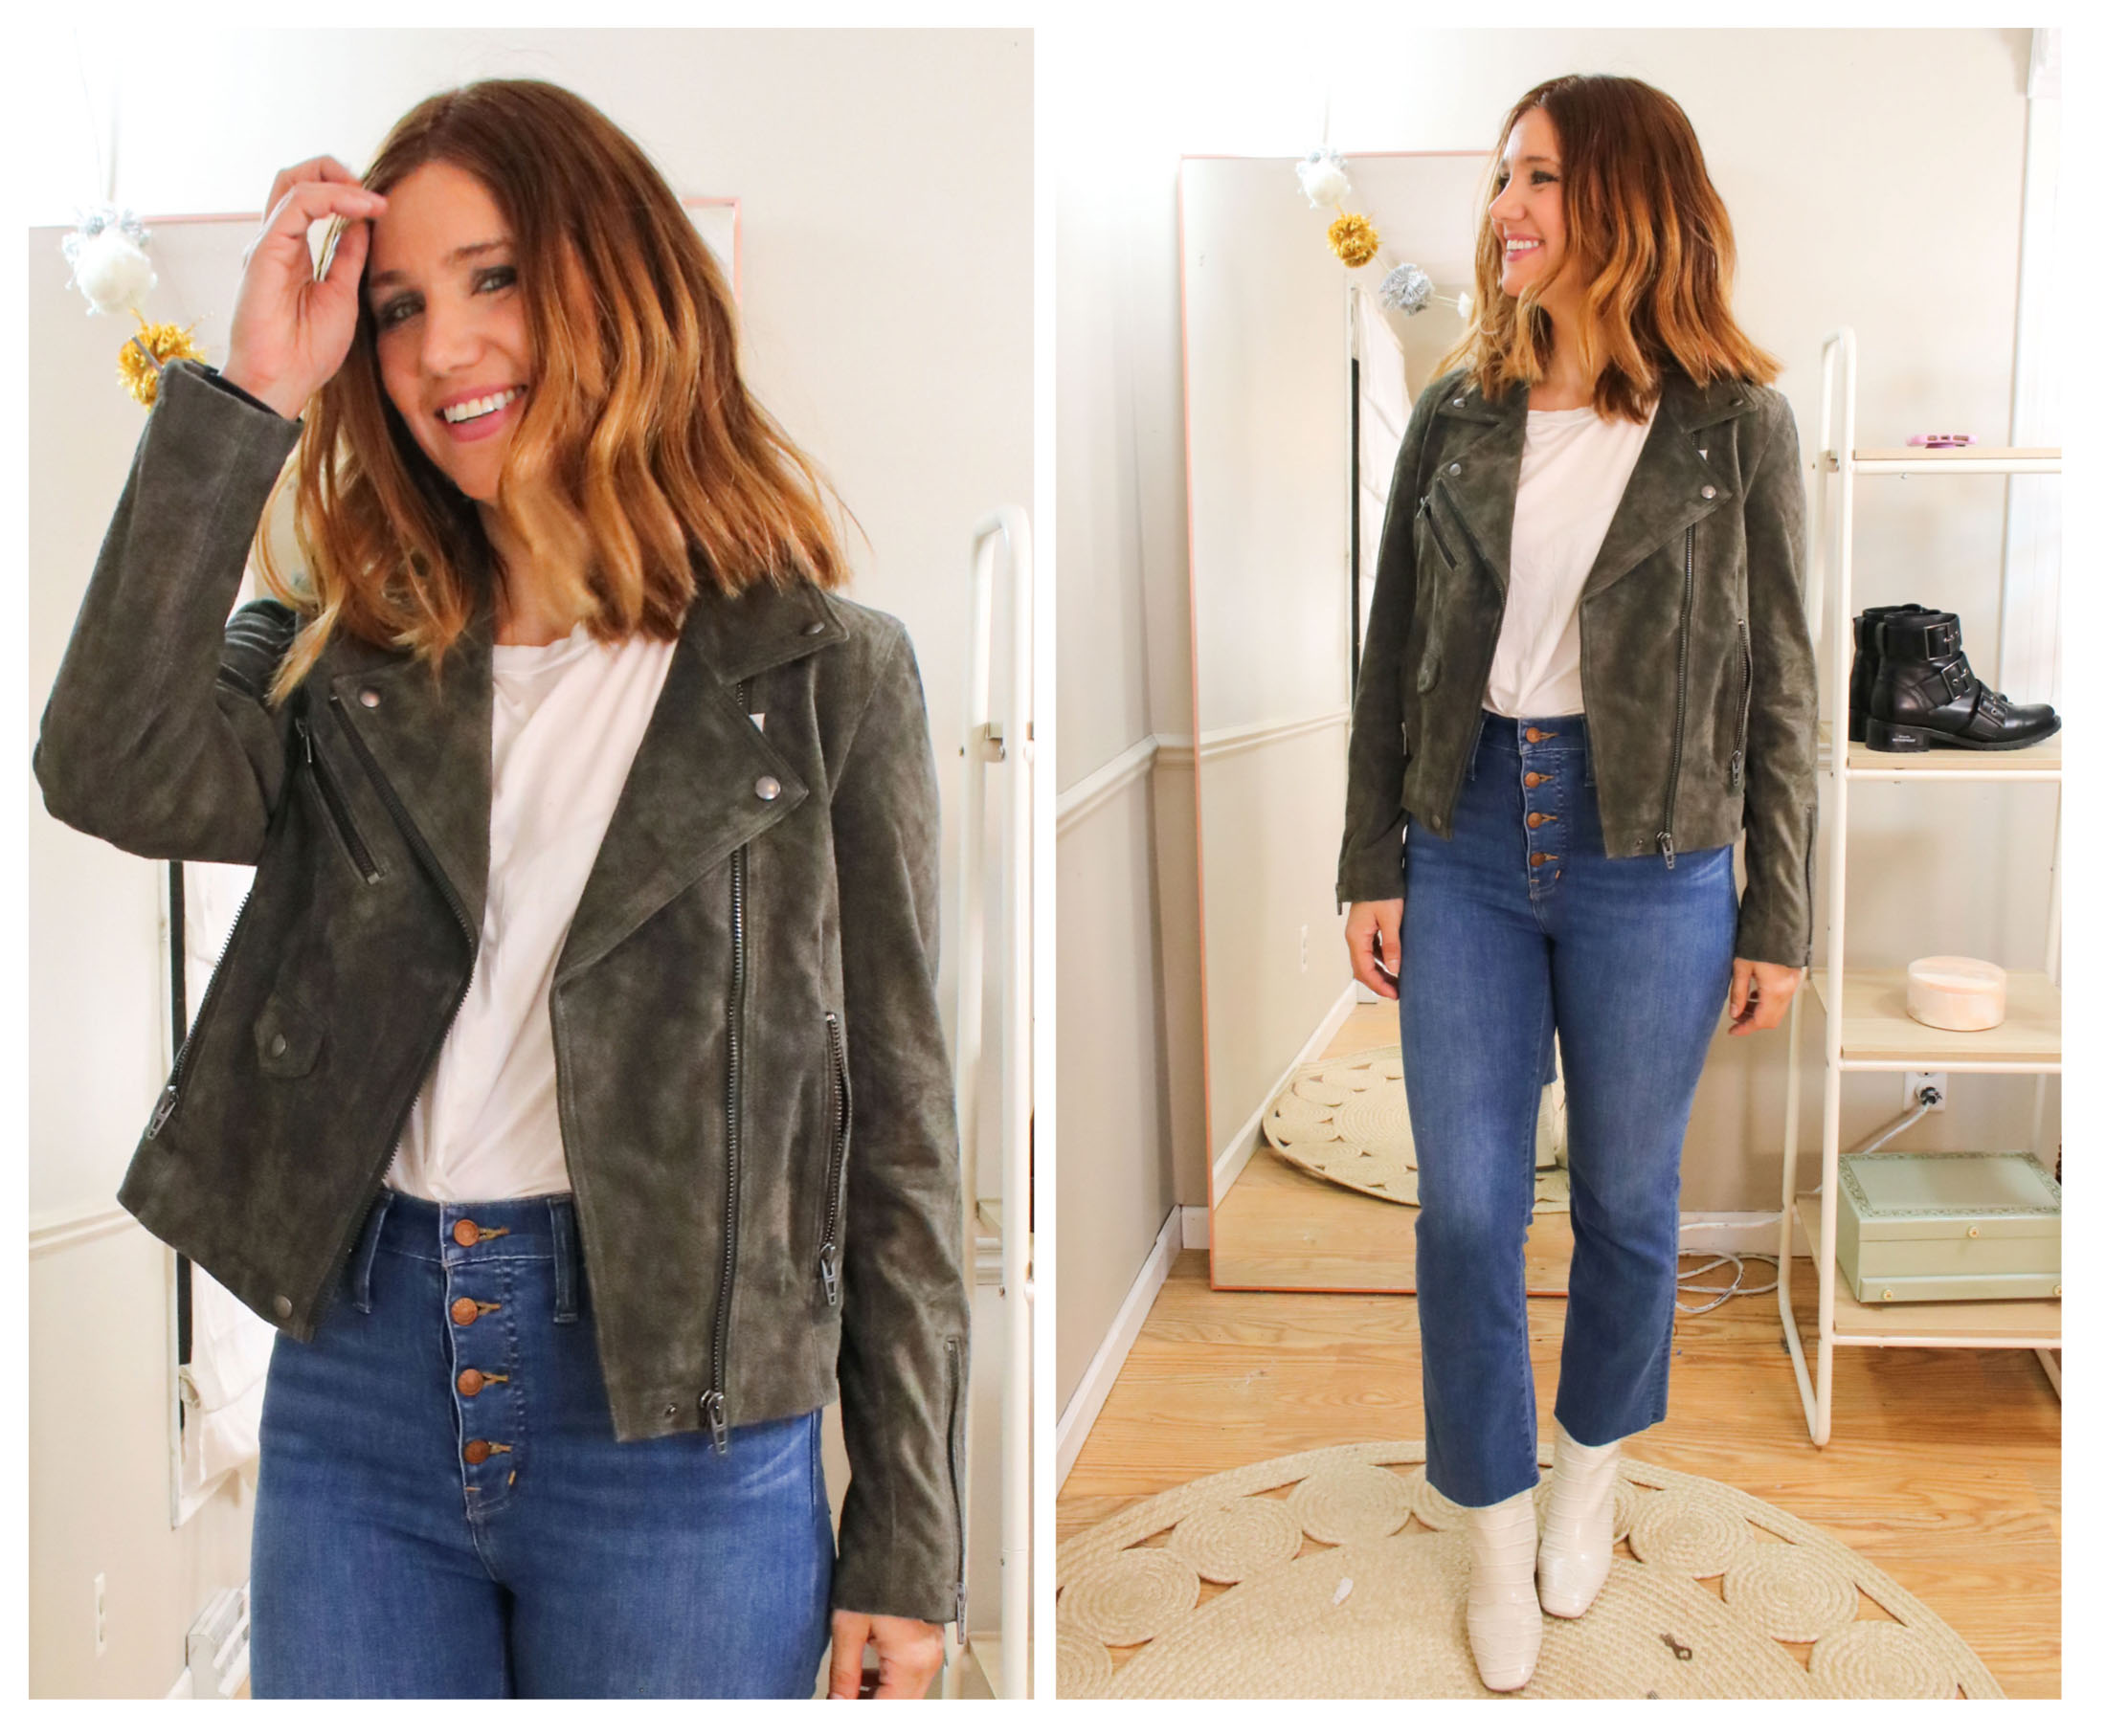 Topshop or rag & bone denim, BLANKNYC moto jackets, booties by Blondo & Sam Edelman...the #NSale offers many ways to perk up your outfits.